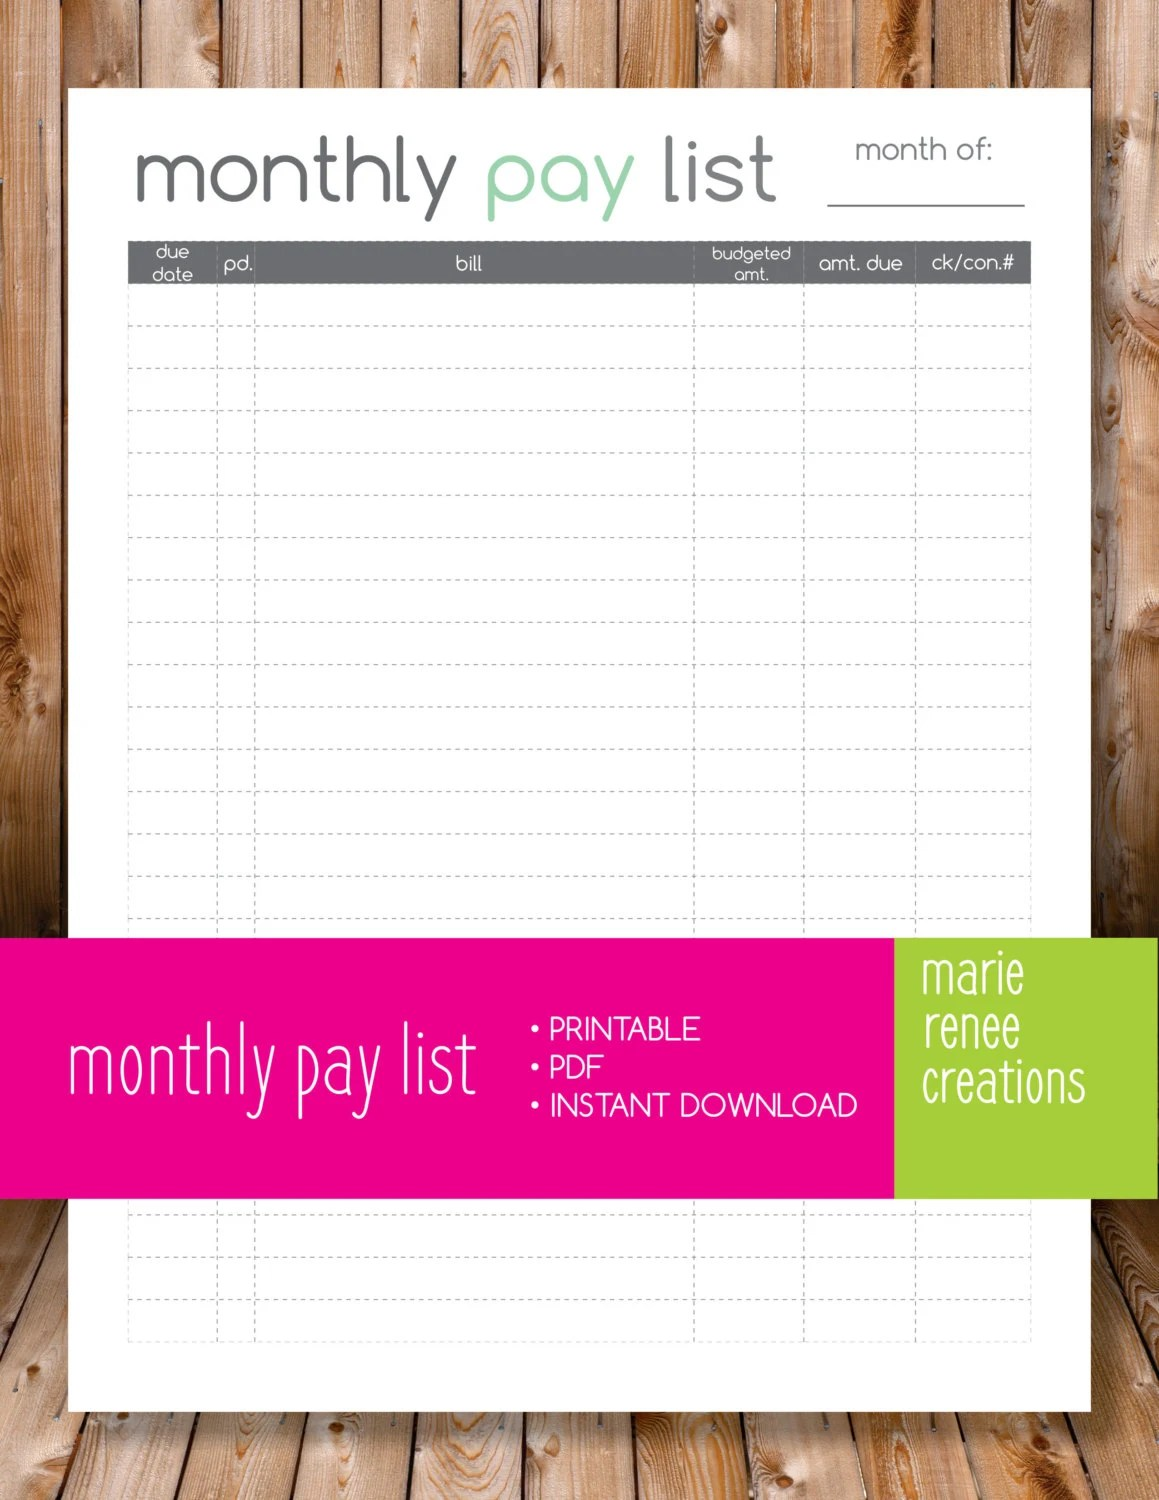 New Monthly Pay List Blank Printable